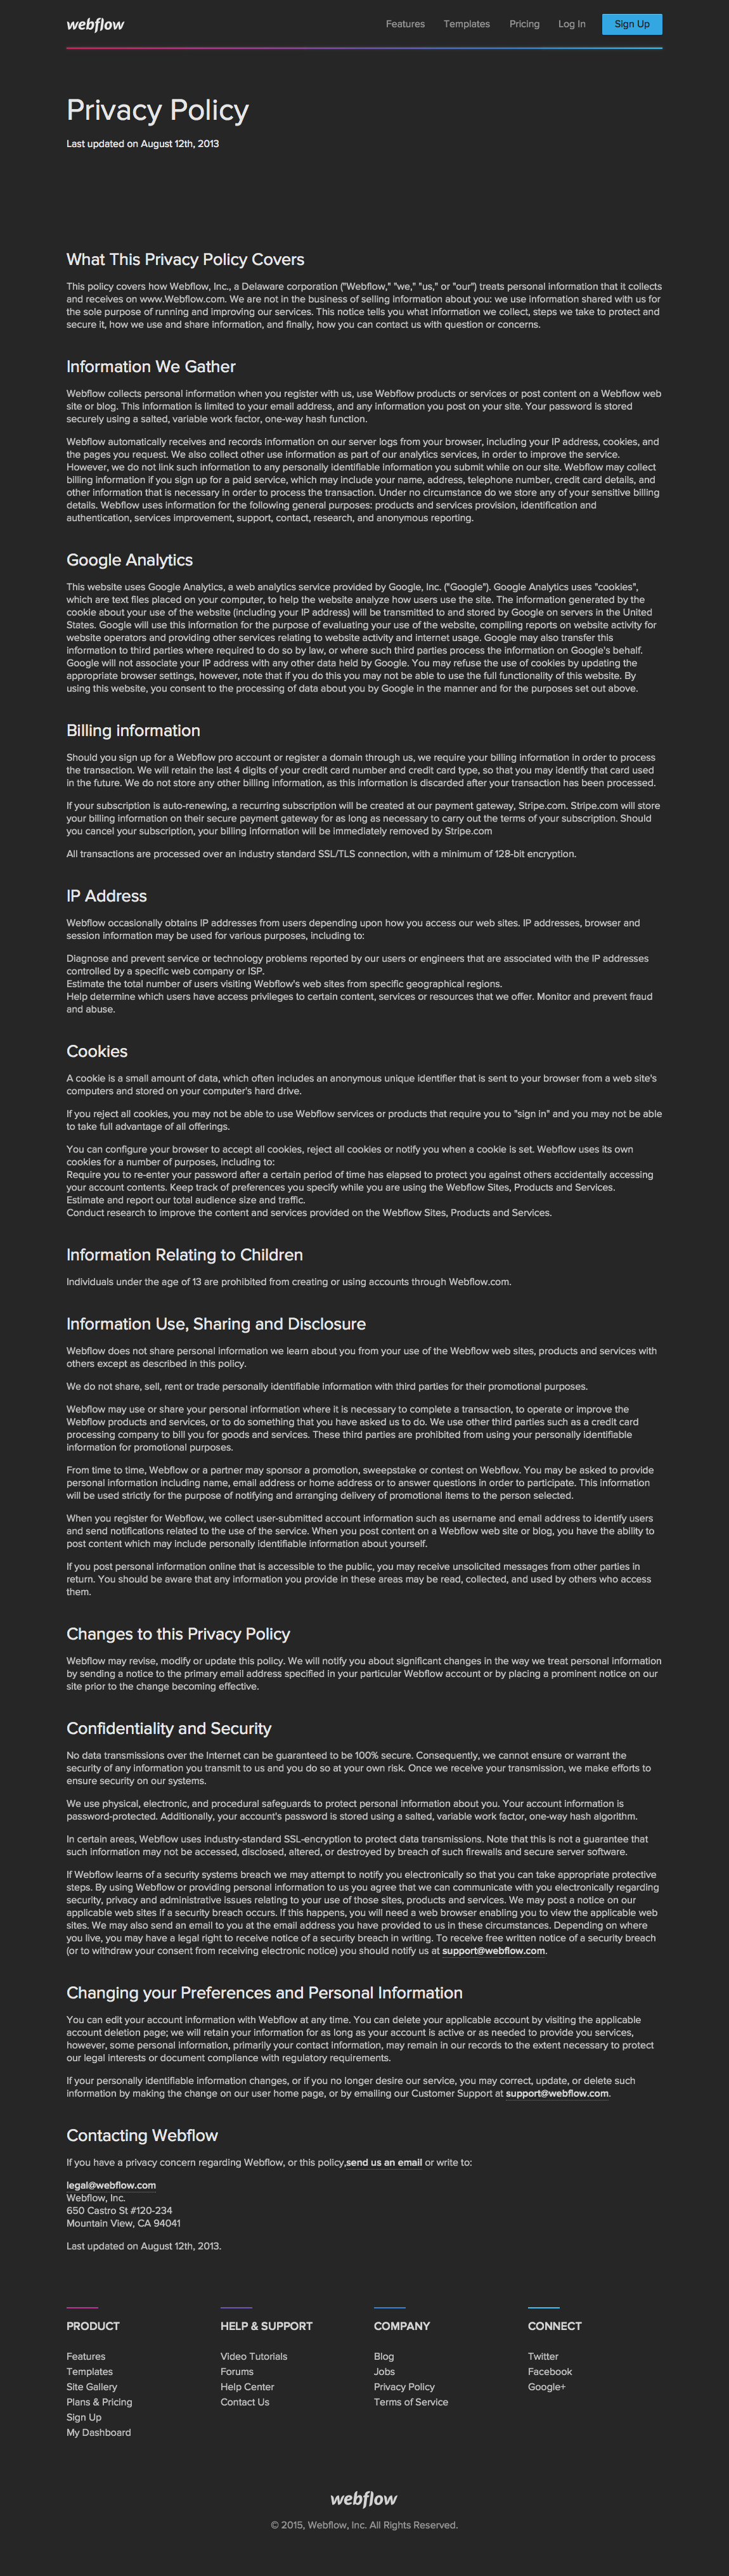 Standard Privacy Policy >> 2020 Free Privacy Policy Template Generator